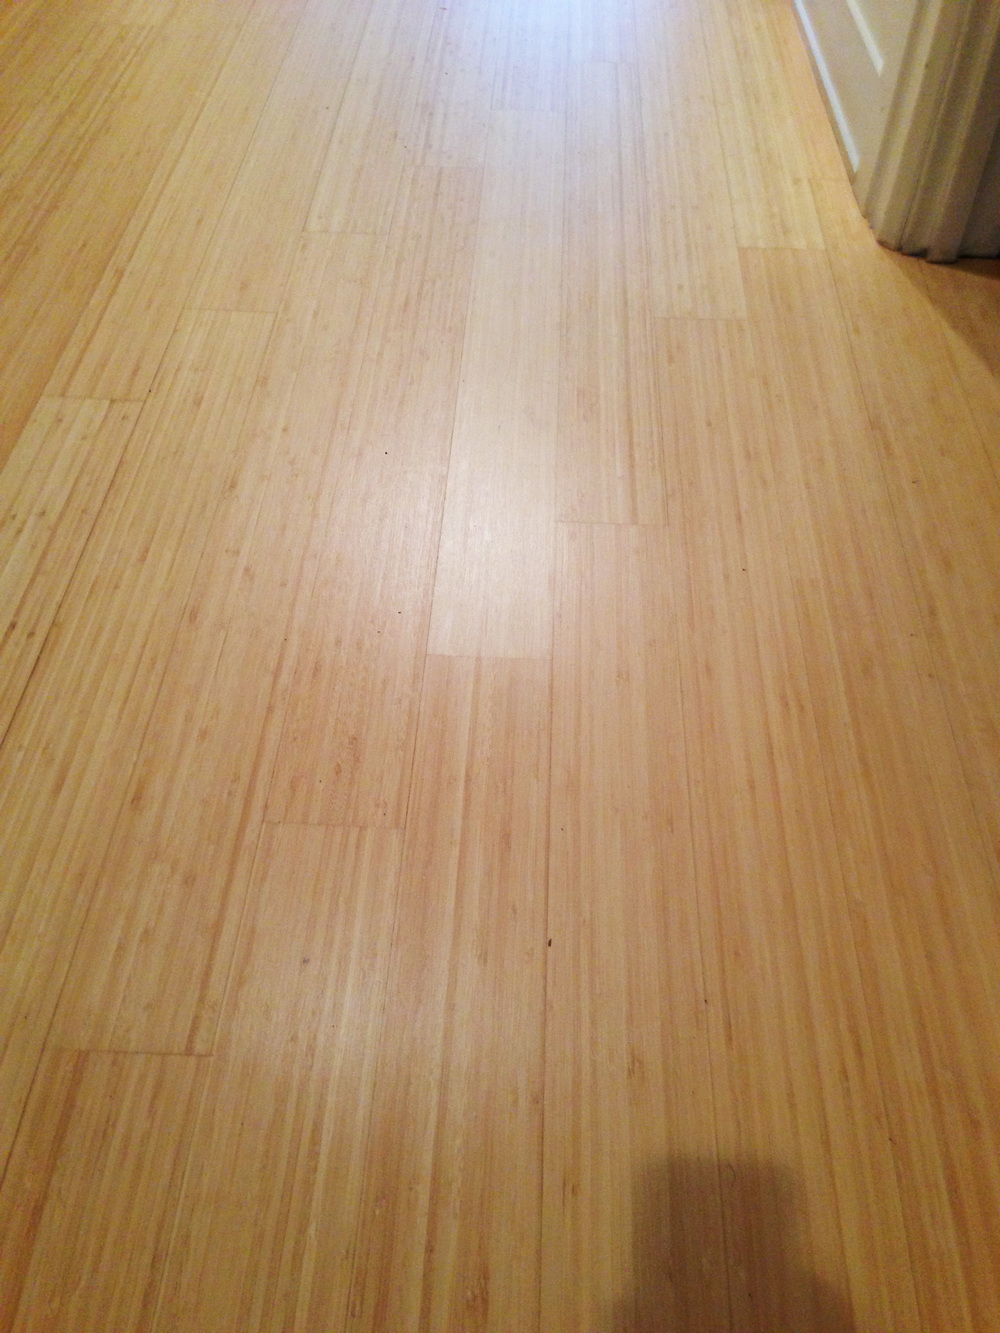 quality-hardwood-floor-B.jpg